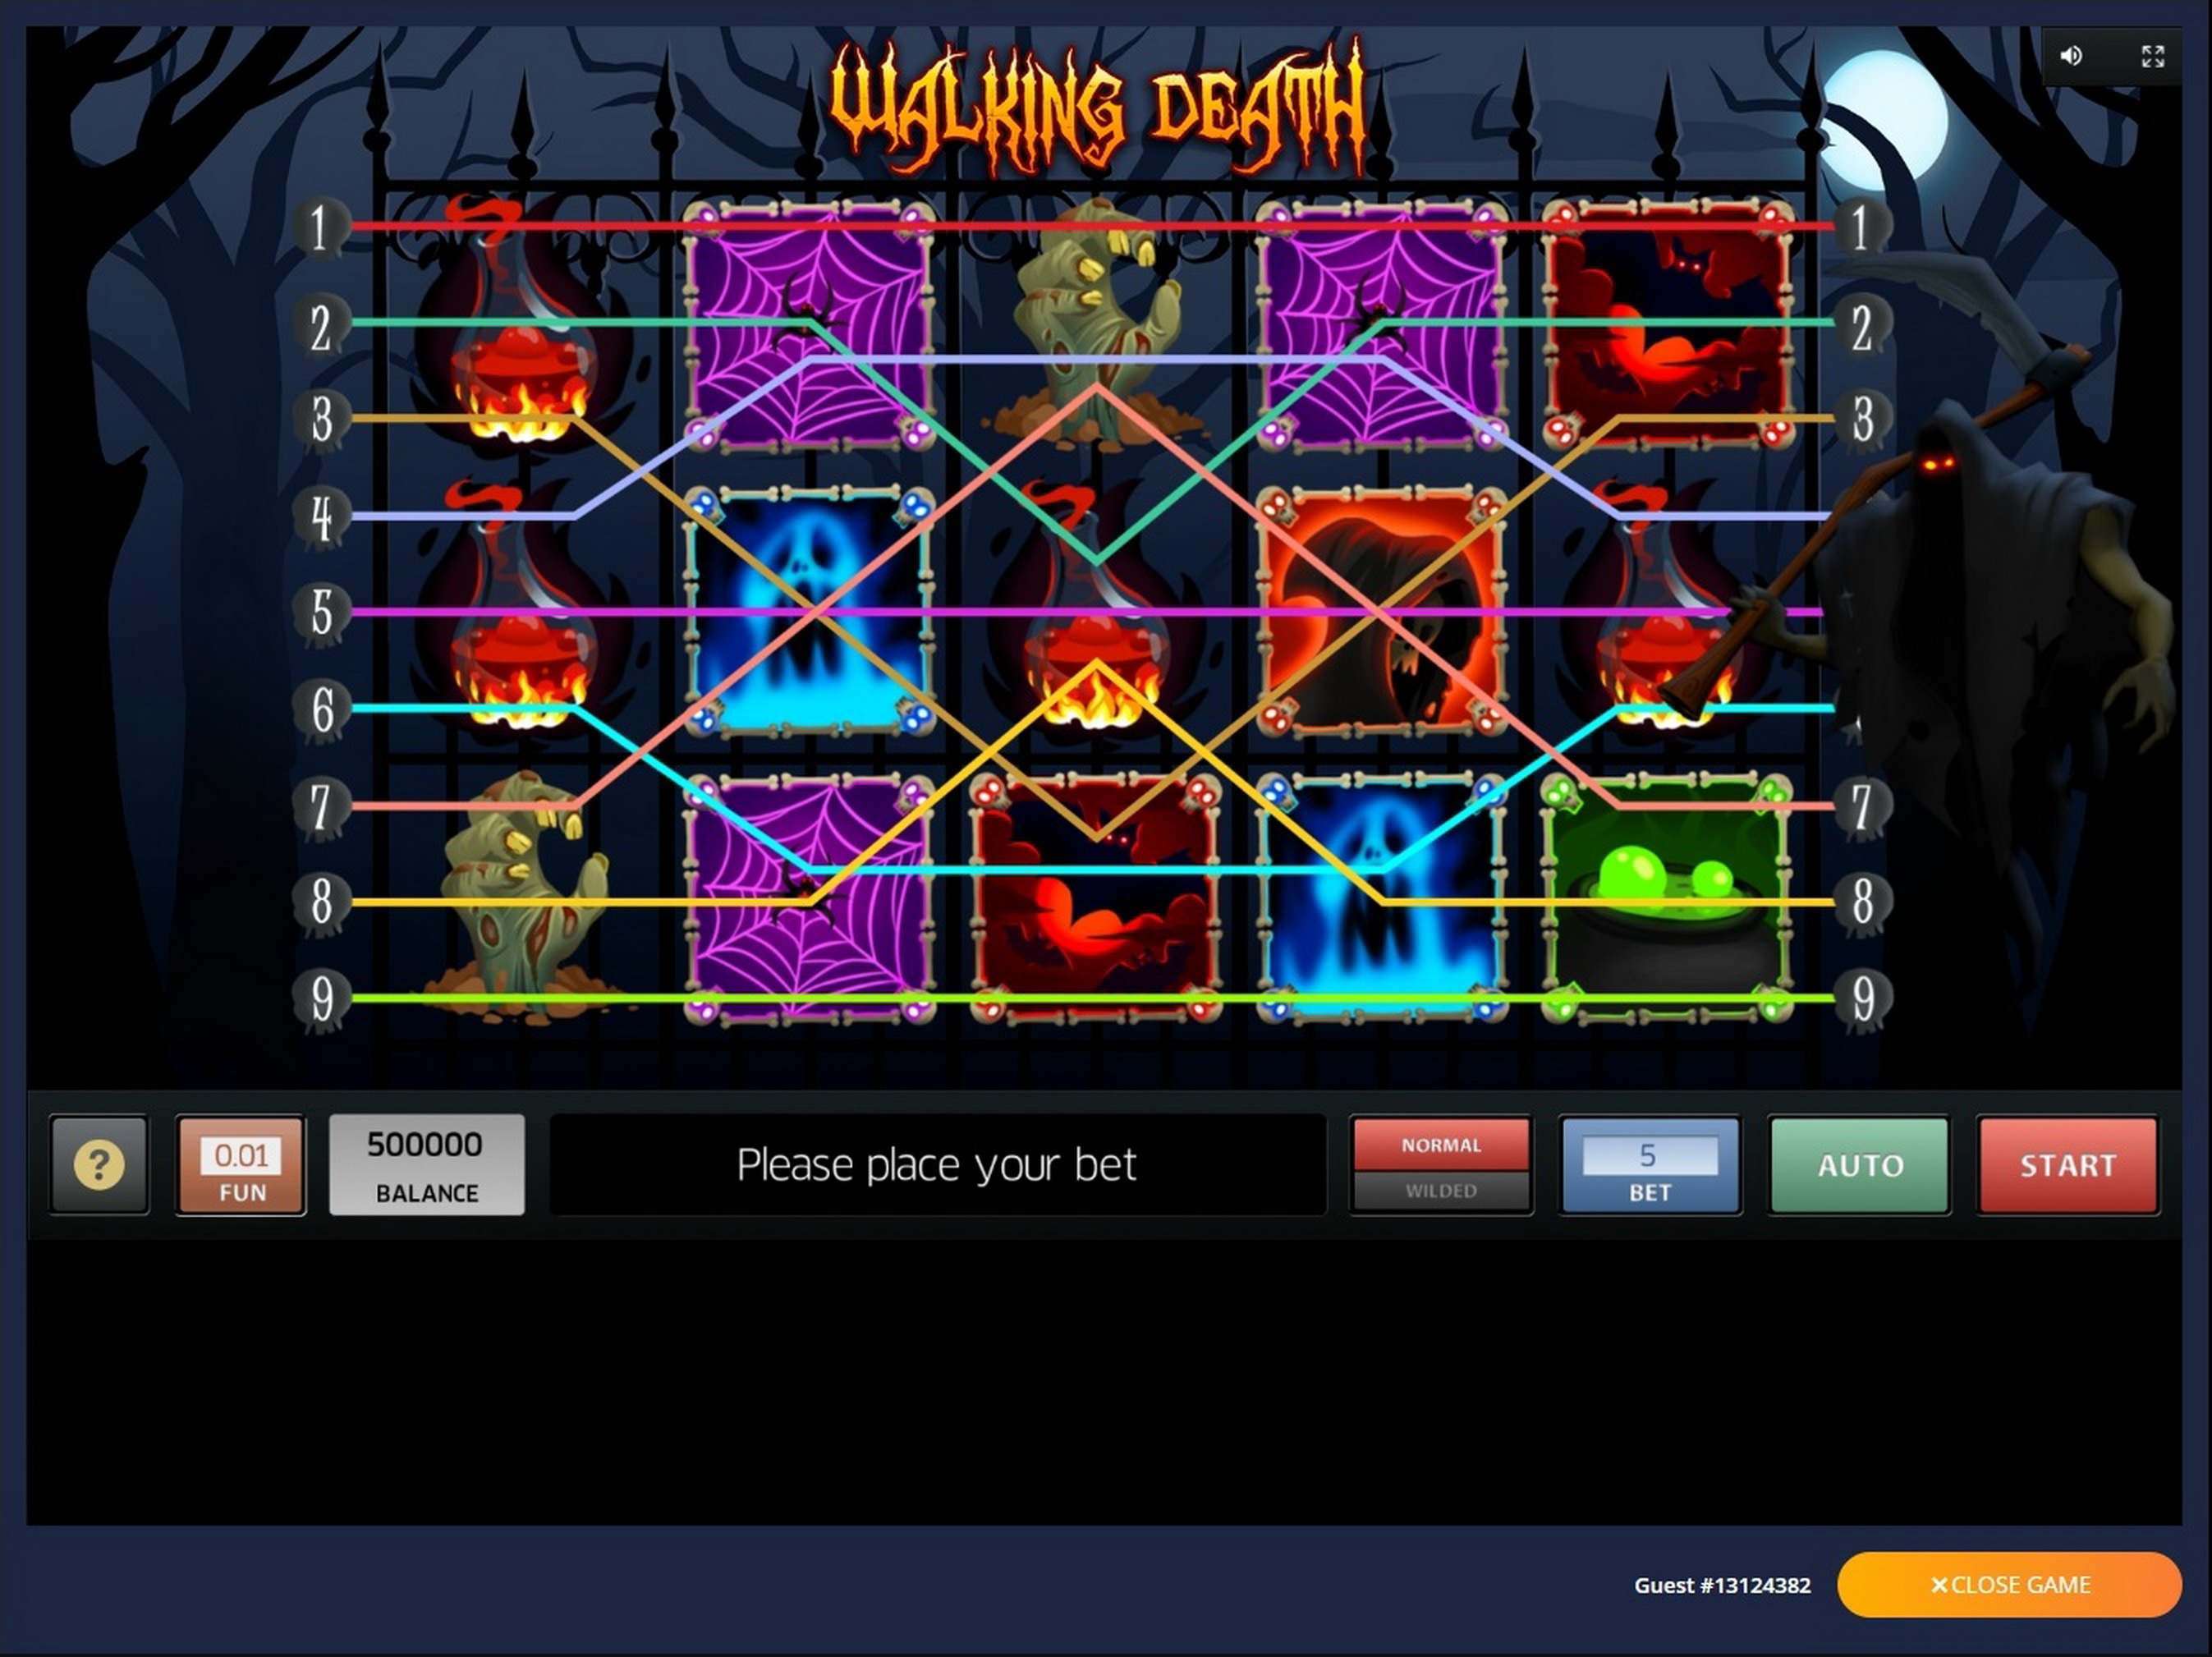 Play Walking Death Free Casino Slot Game by InBet Games